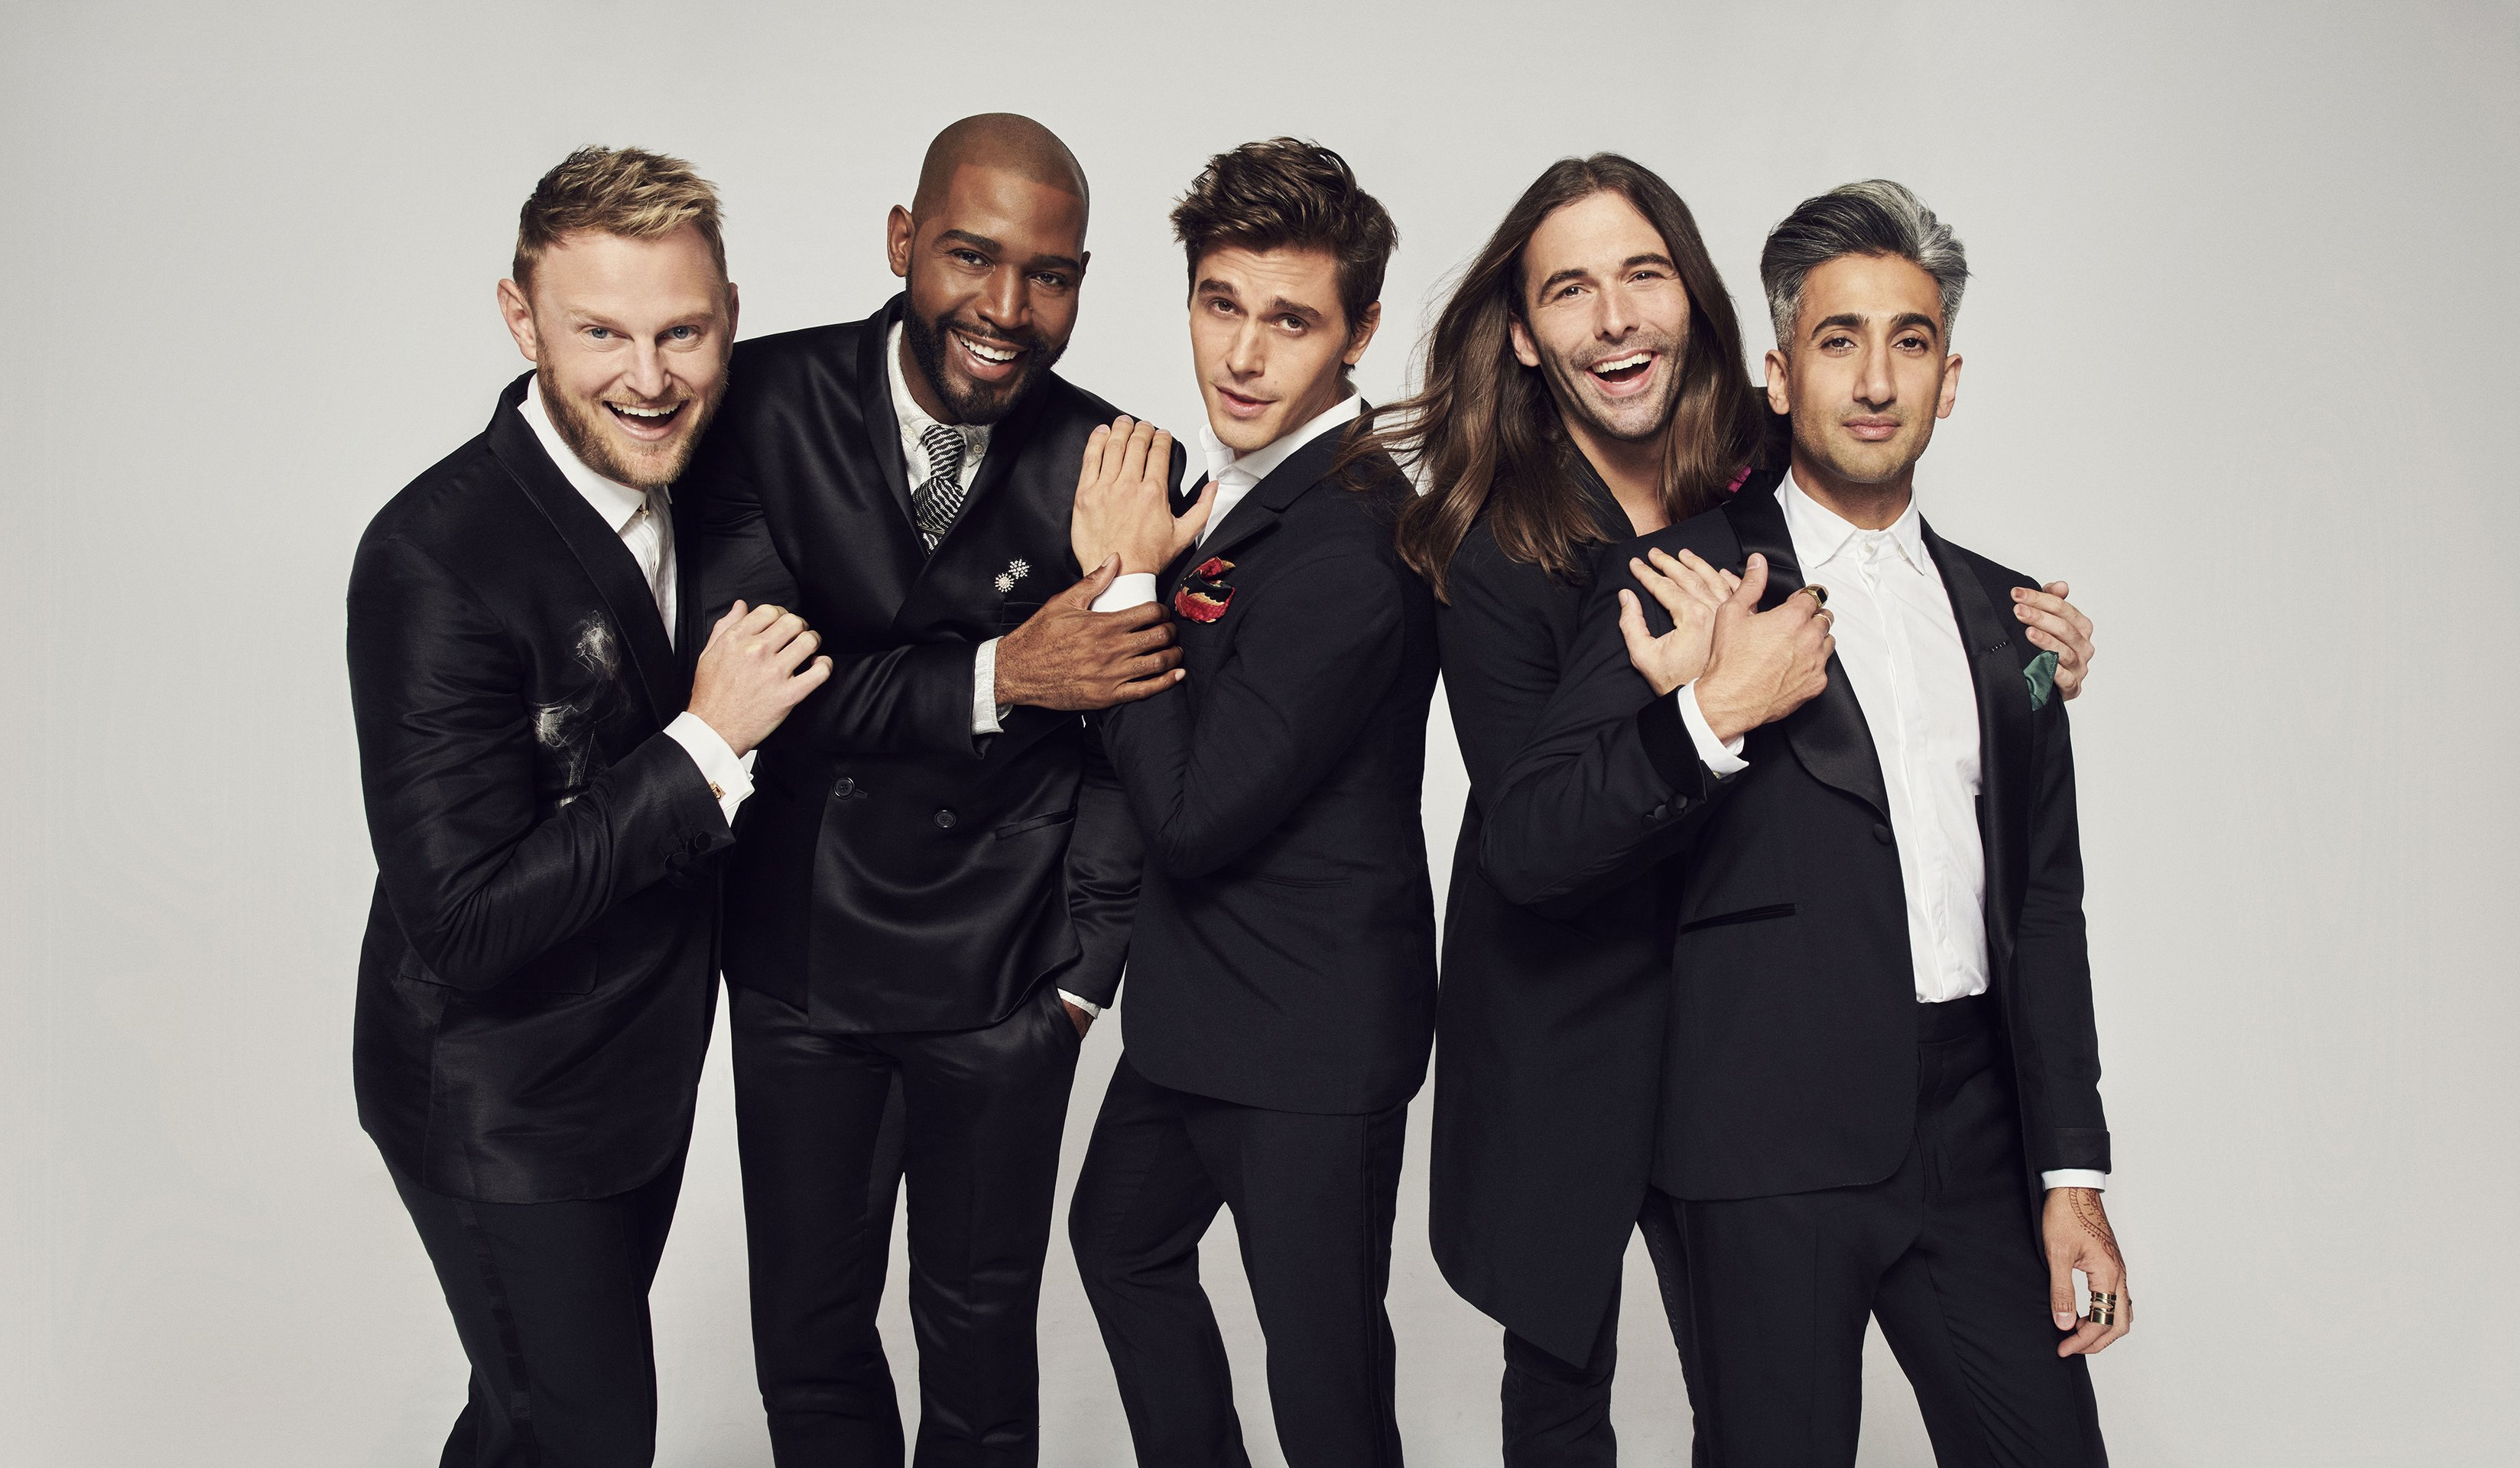 Queer Eye Serie Stream Streaminganbieter 552424com